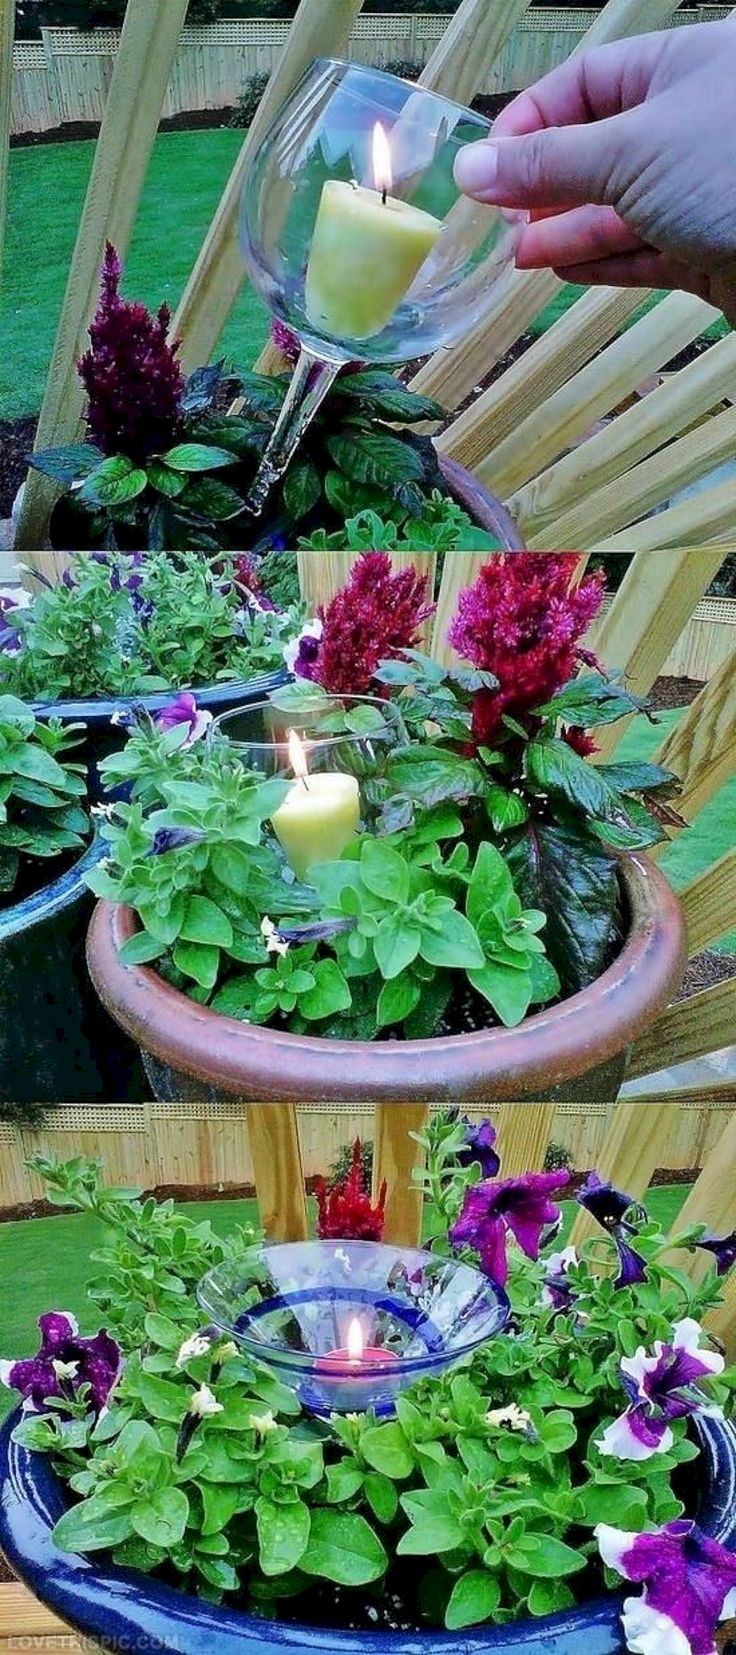 Best 25 vintage outdoor decor ideas on pinterest - Outdoor decoratie zwembad ...